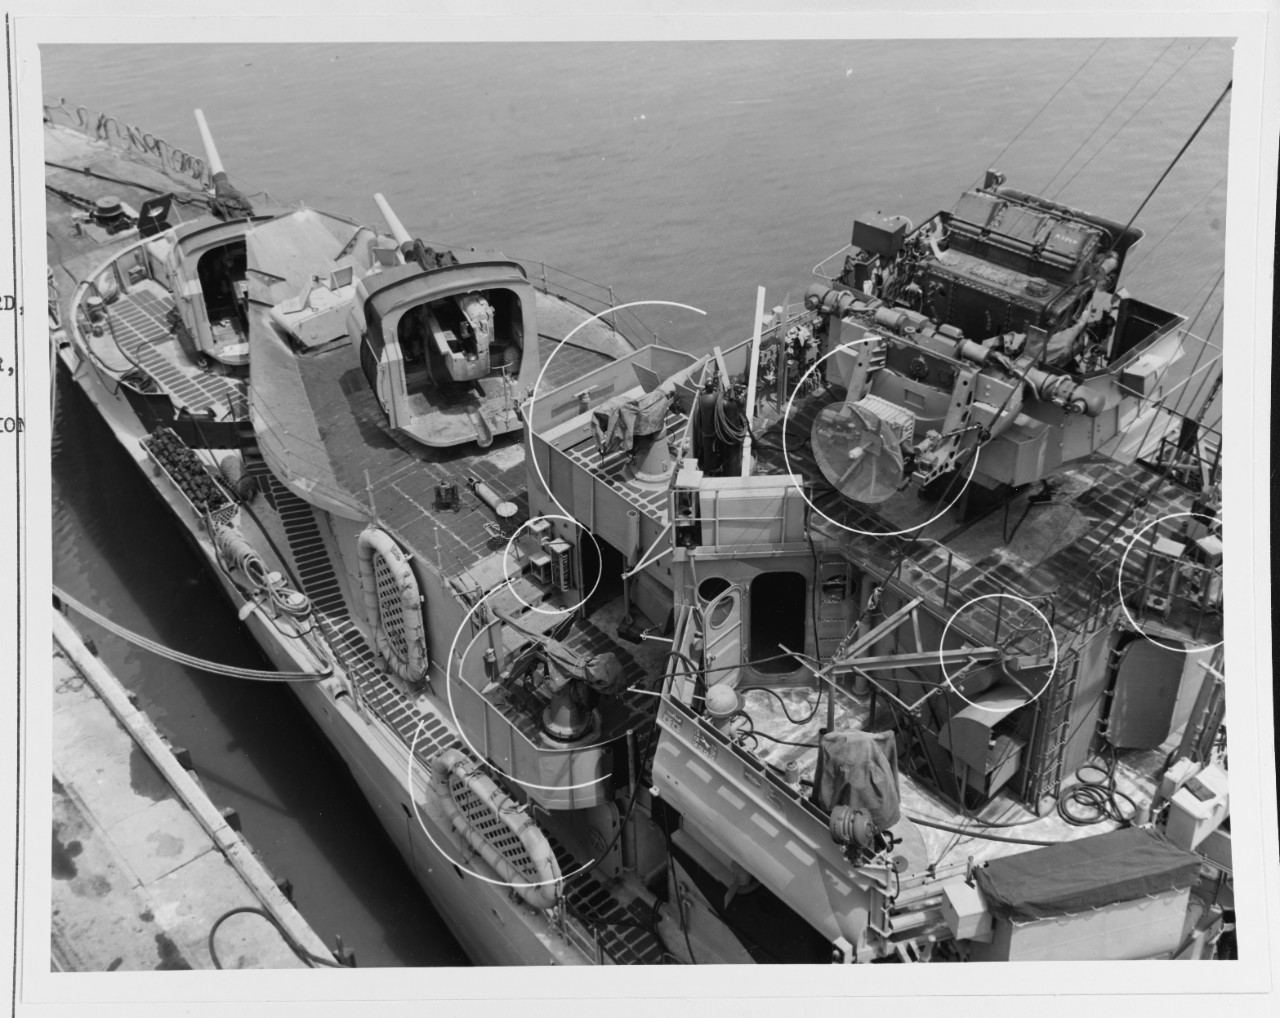 Close-up view of Mahan's forward superstructure, taken at Mare Island on 24 June 1944. View looks down on the port side of the pilothouse, and shows the destroyer's Mk. 33 gun director, with fire control radar antenna, in the upper right. Also seen are her two forward 5-inch gun mounts, non-skid deck treads, and life rafts. Circles indicate recent alterations to the ship. (U.S. Navy Bureau of Ships Photograph 19-N-67752, National Archives and Records Administration, Still Pictures Division, College Park, Md.)